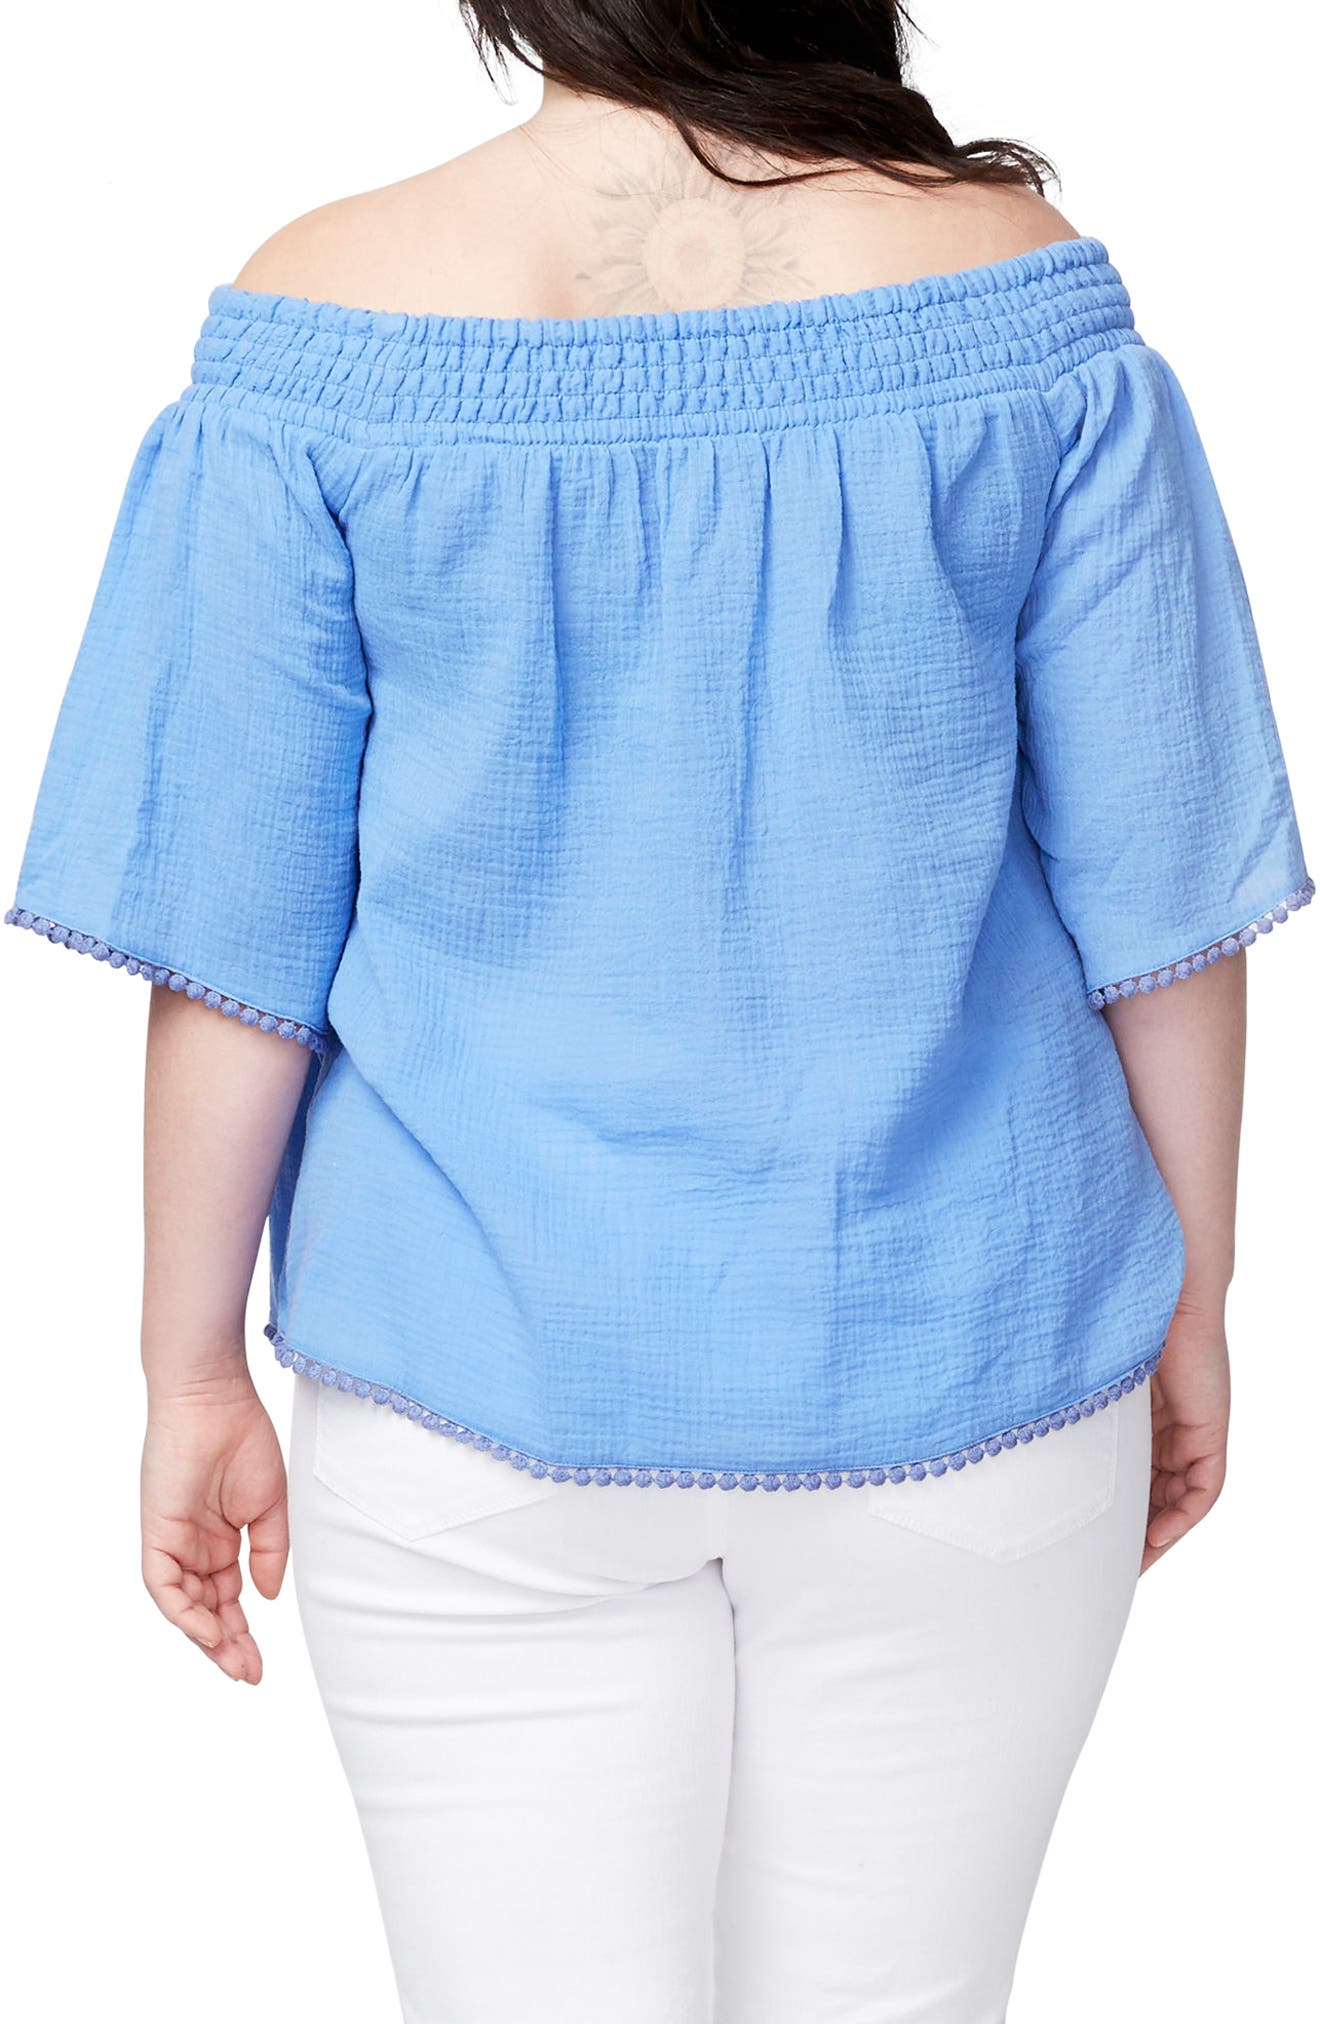 Alternate Image 2  - RACHEL Rachel Roy Smocked Off the Shoulder Top (Plus Size)